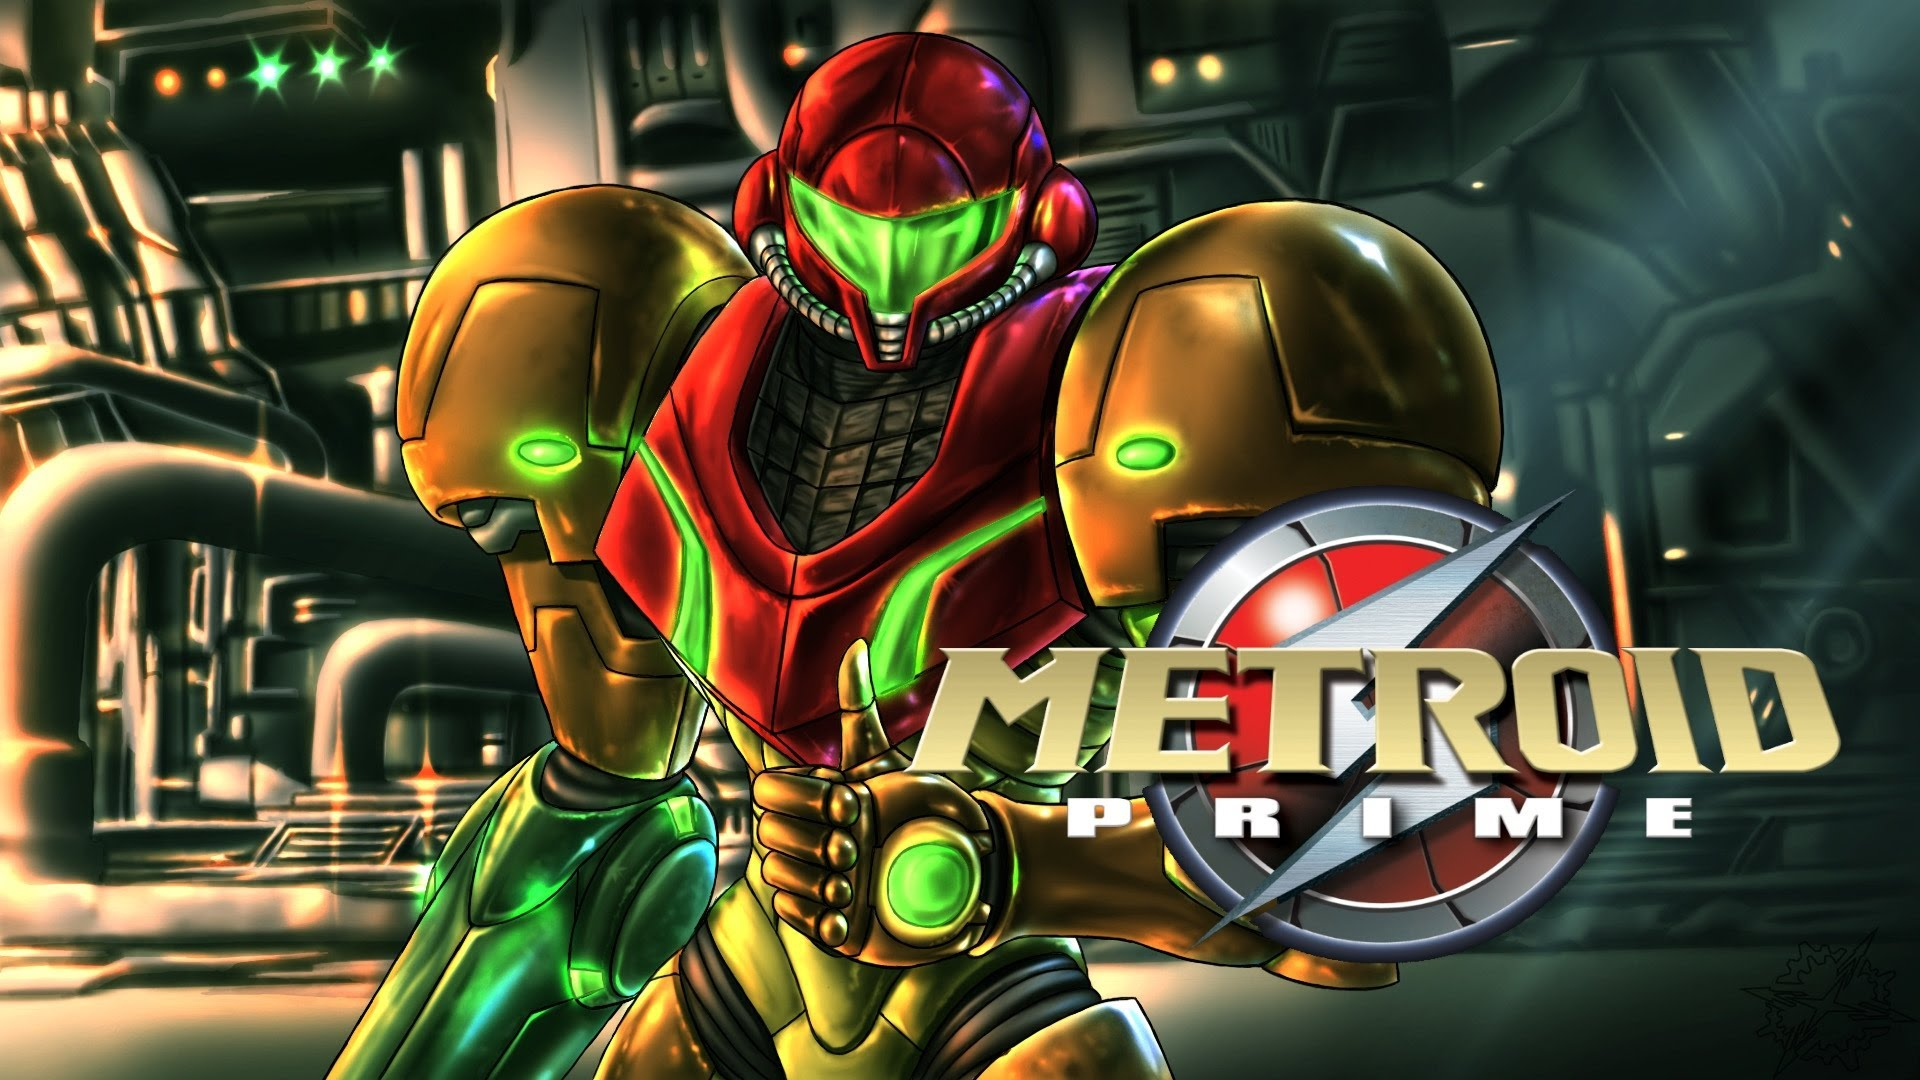 Metroid Prime Producer: Metroid Prime Would Need to be Continued on NX